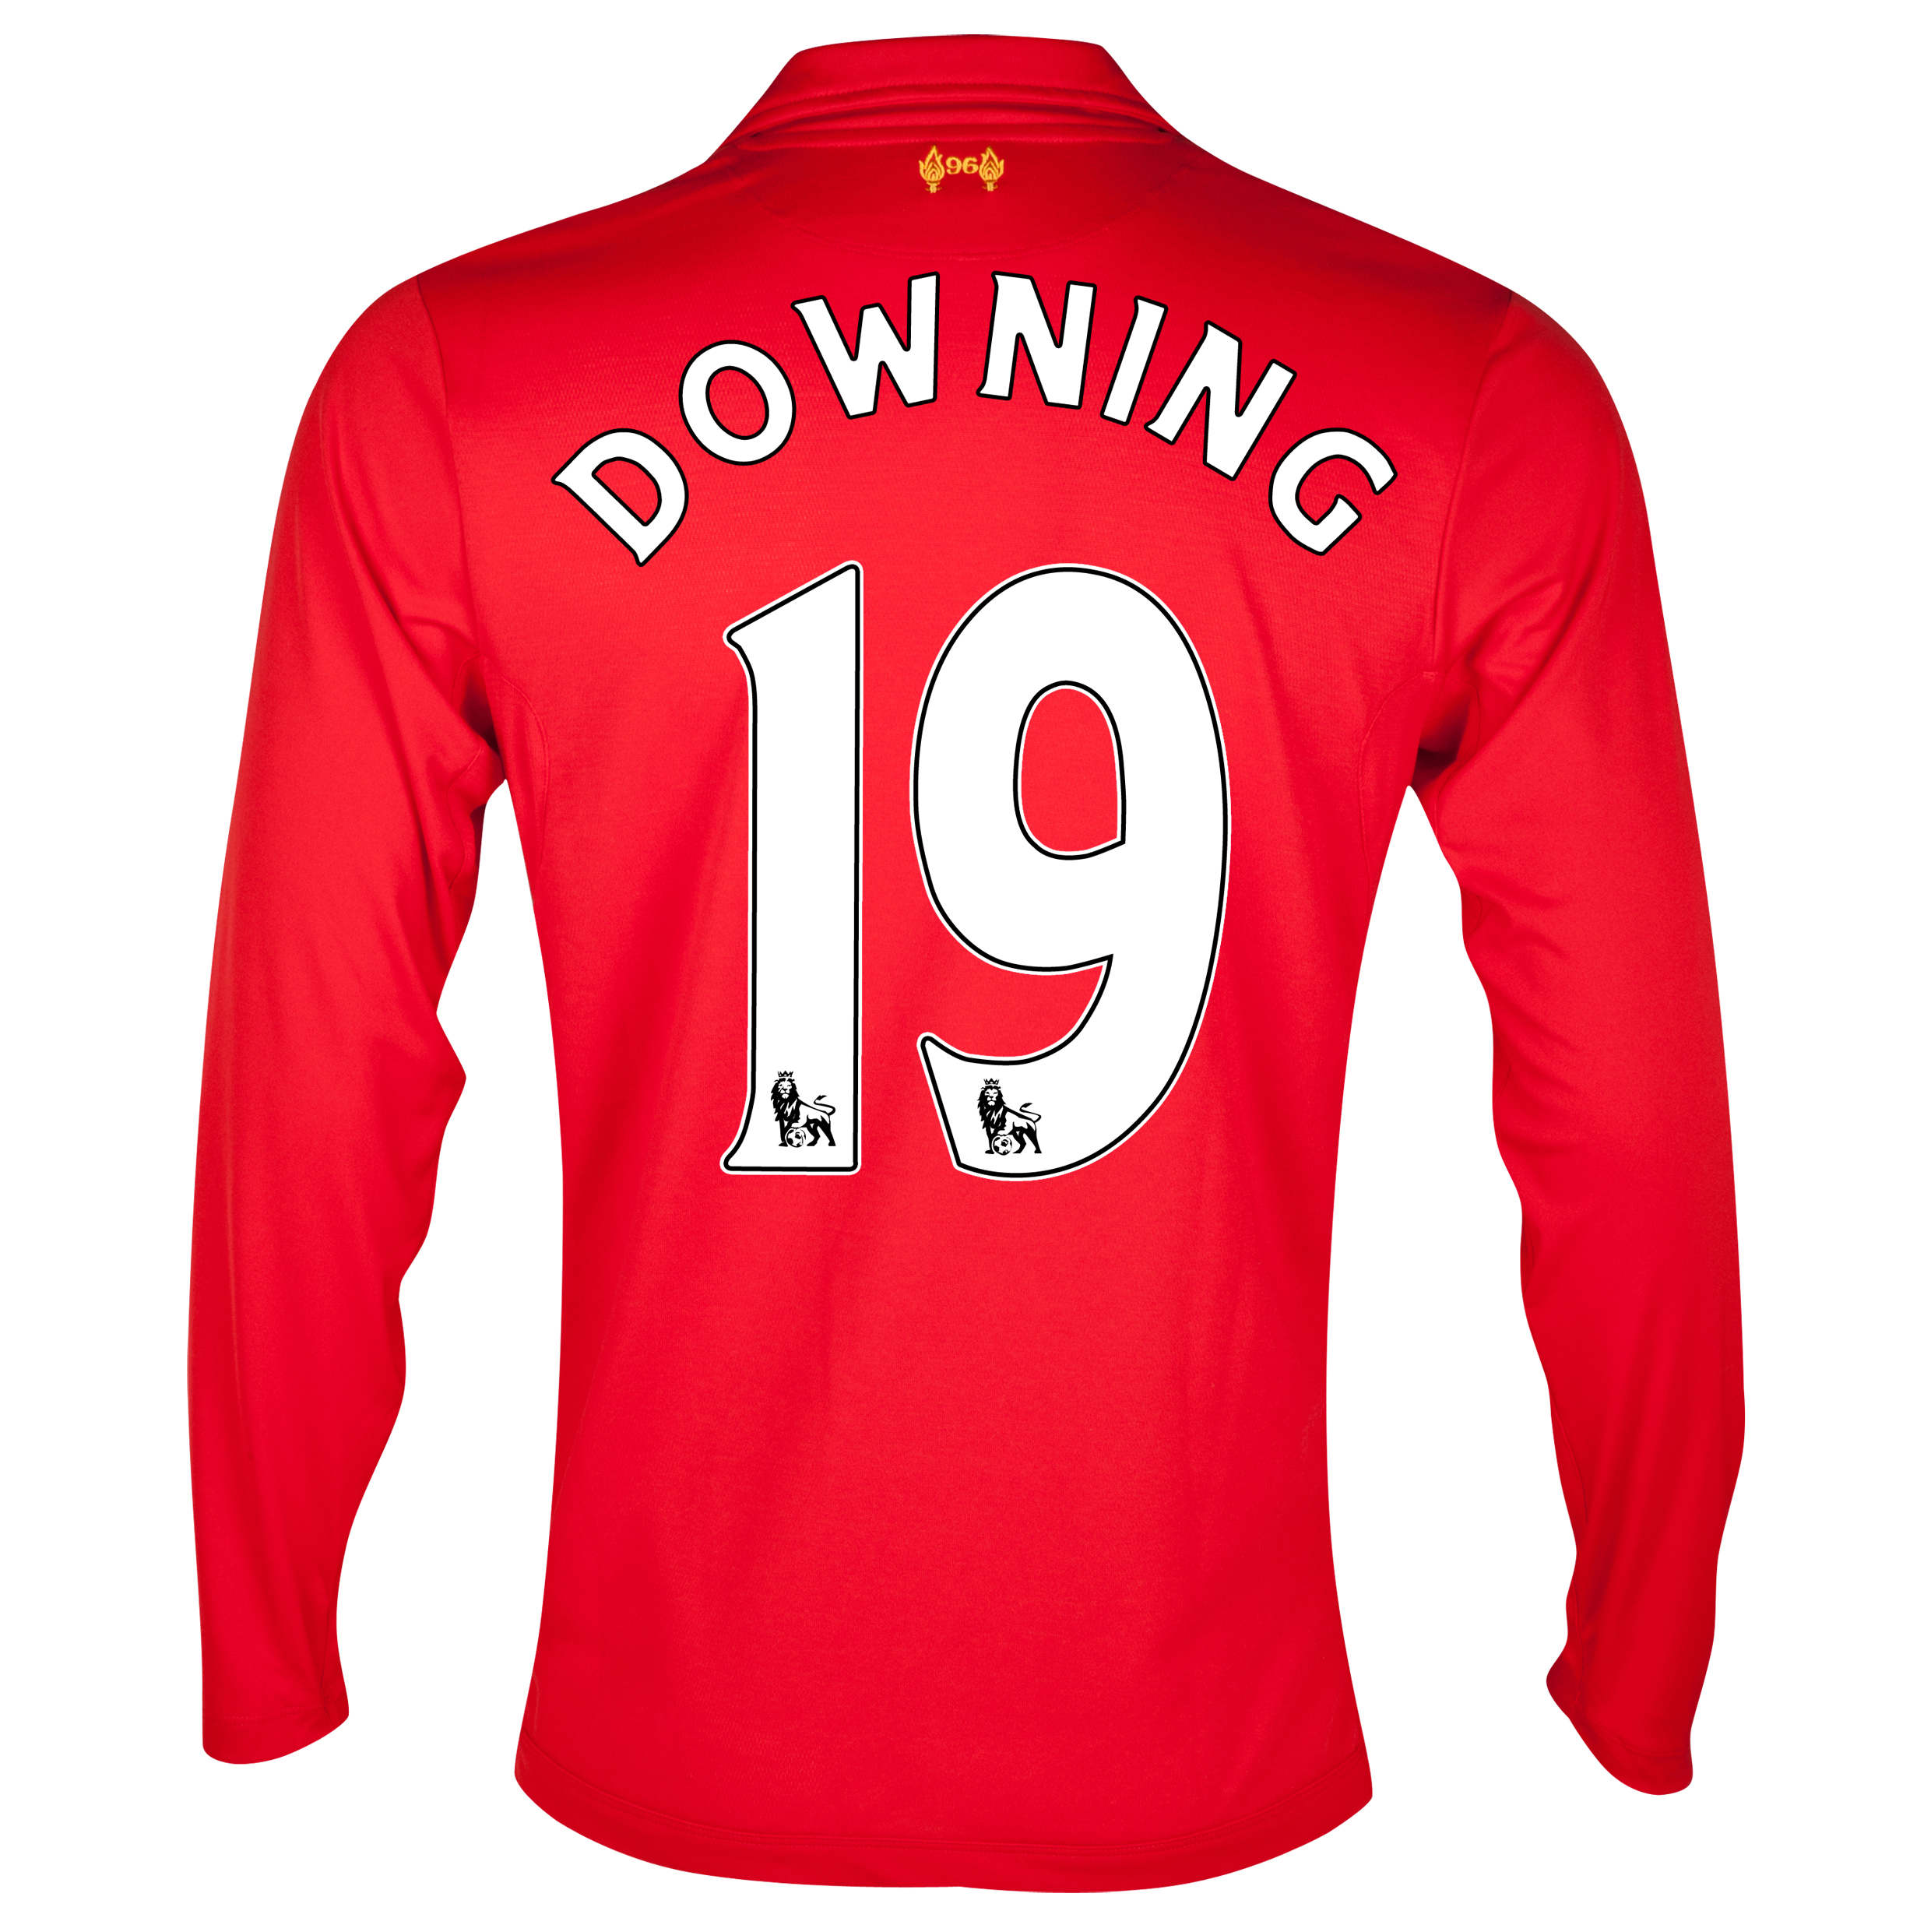 Liverpool Home Shirt 2012/13 - Long Sleeve - Youths with Downing 19 printing